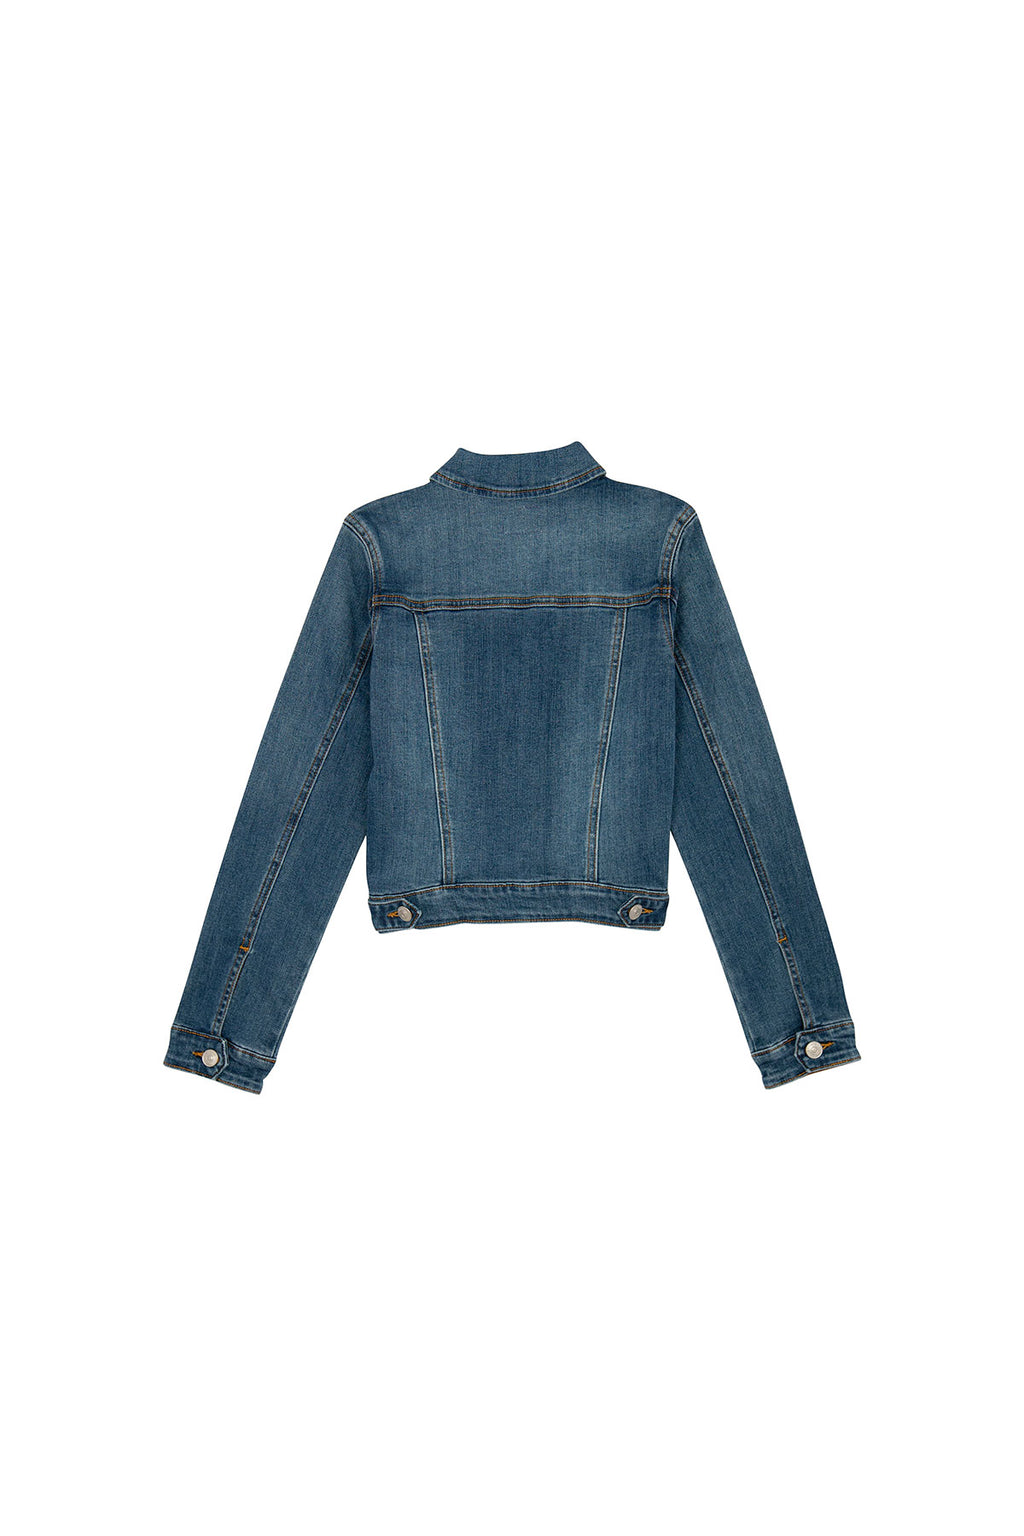 GIRLS JEAN JACKET, SIZES 7-16 - INDIGO BLUE - Image 2